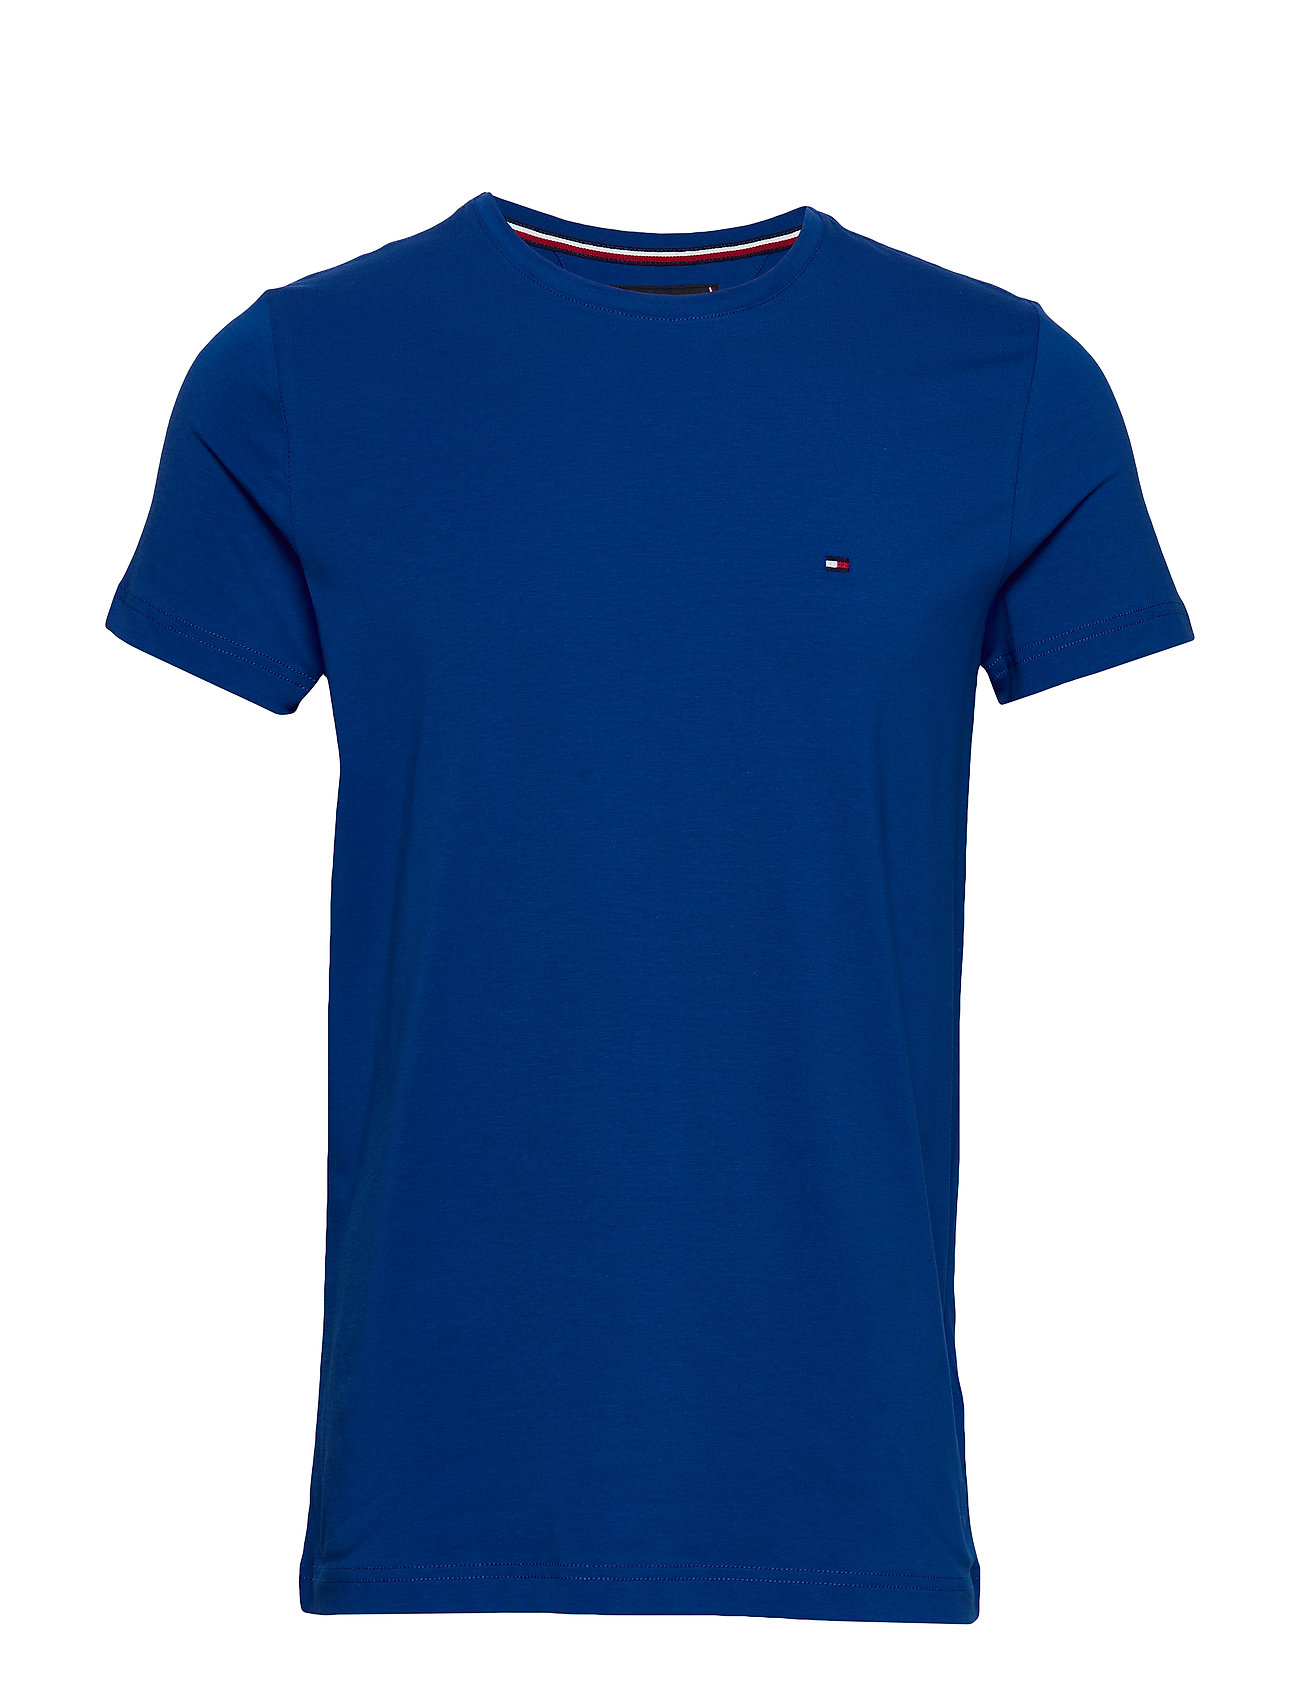 Tommy Hilfiger STRETCH SLIM FIT TEE - COBALT